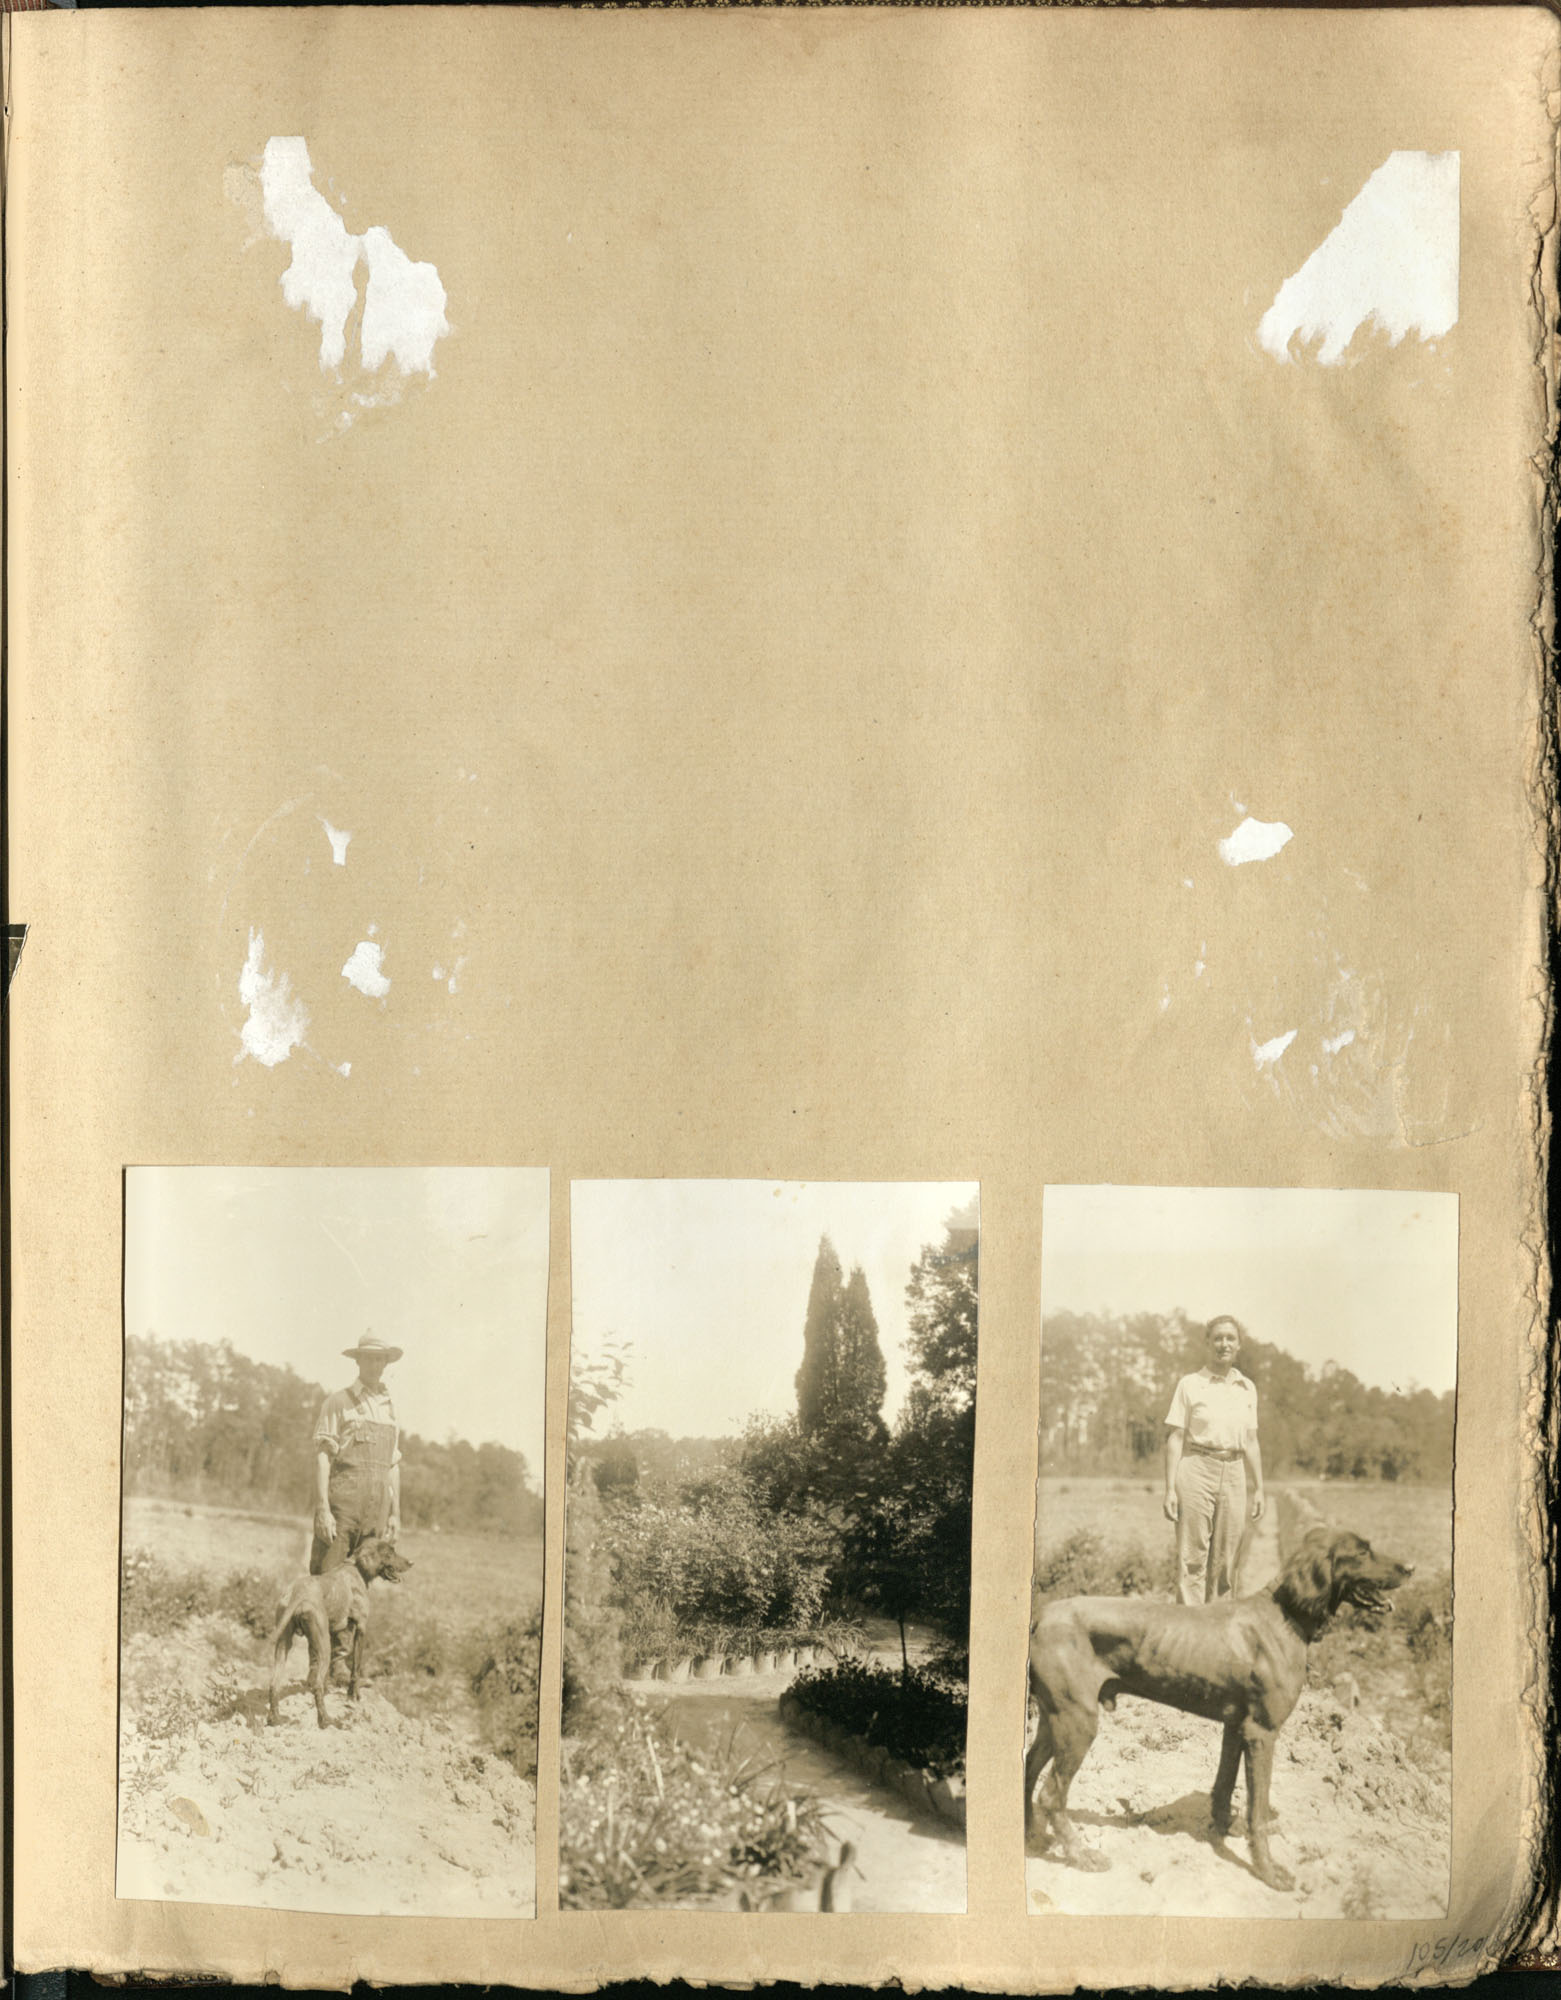 Early Medway and travels album, 1929-1937, page 105